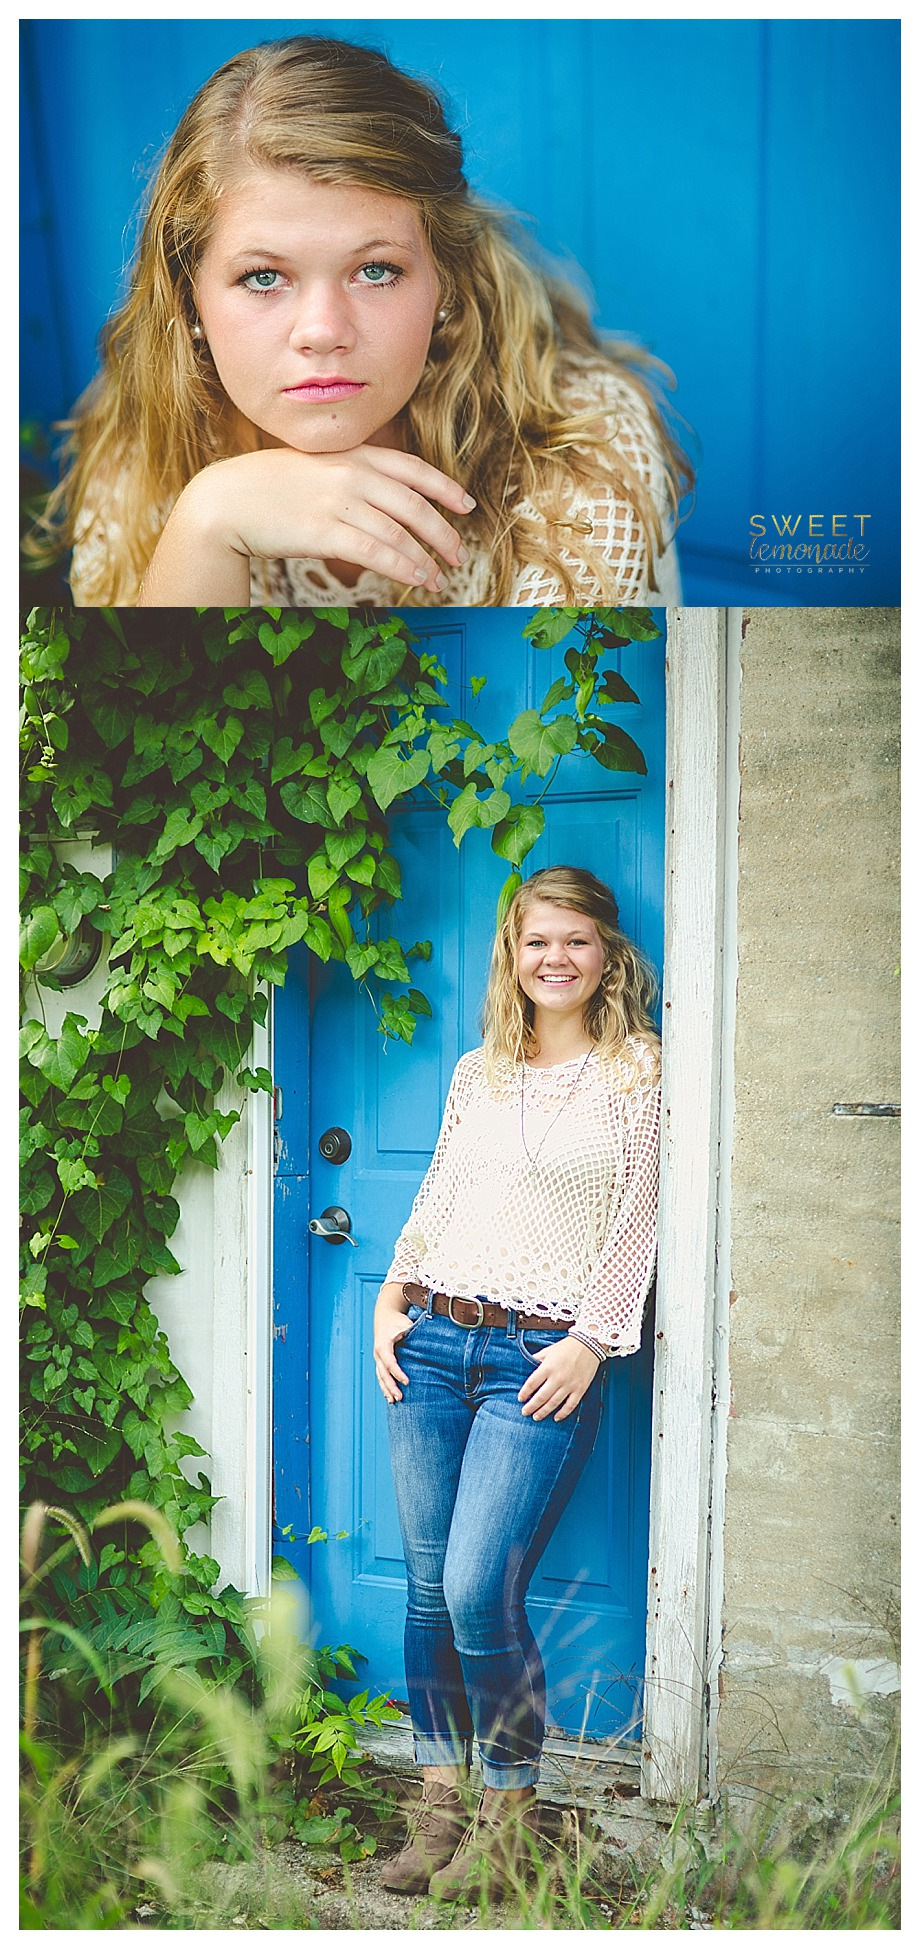 senior girl picture in francesca cream crochet top by blue door